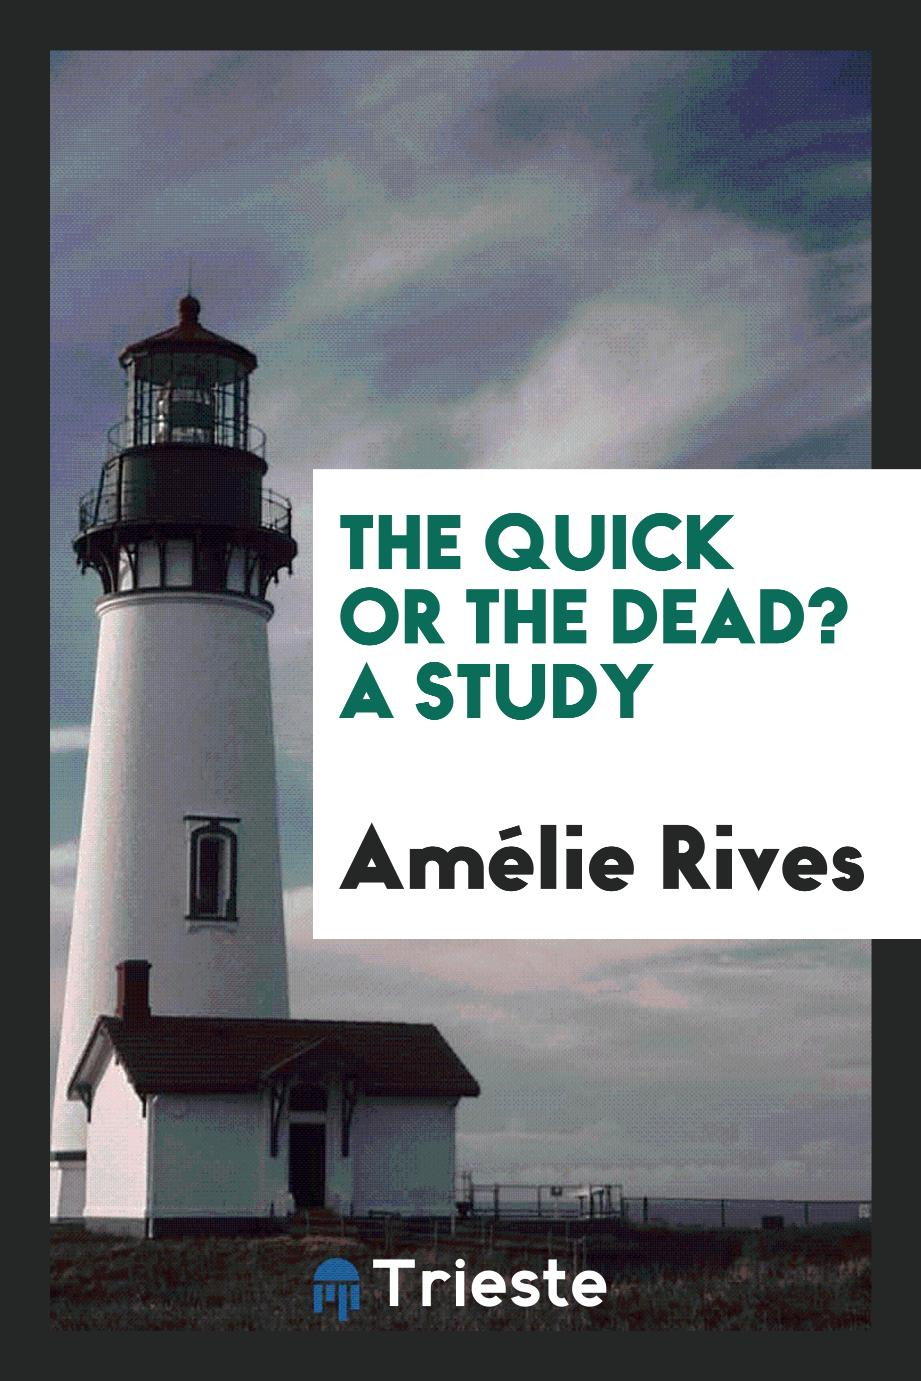 The Quick or the Dead? A Study